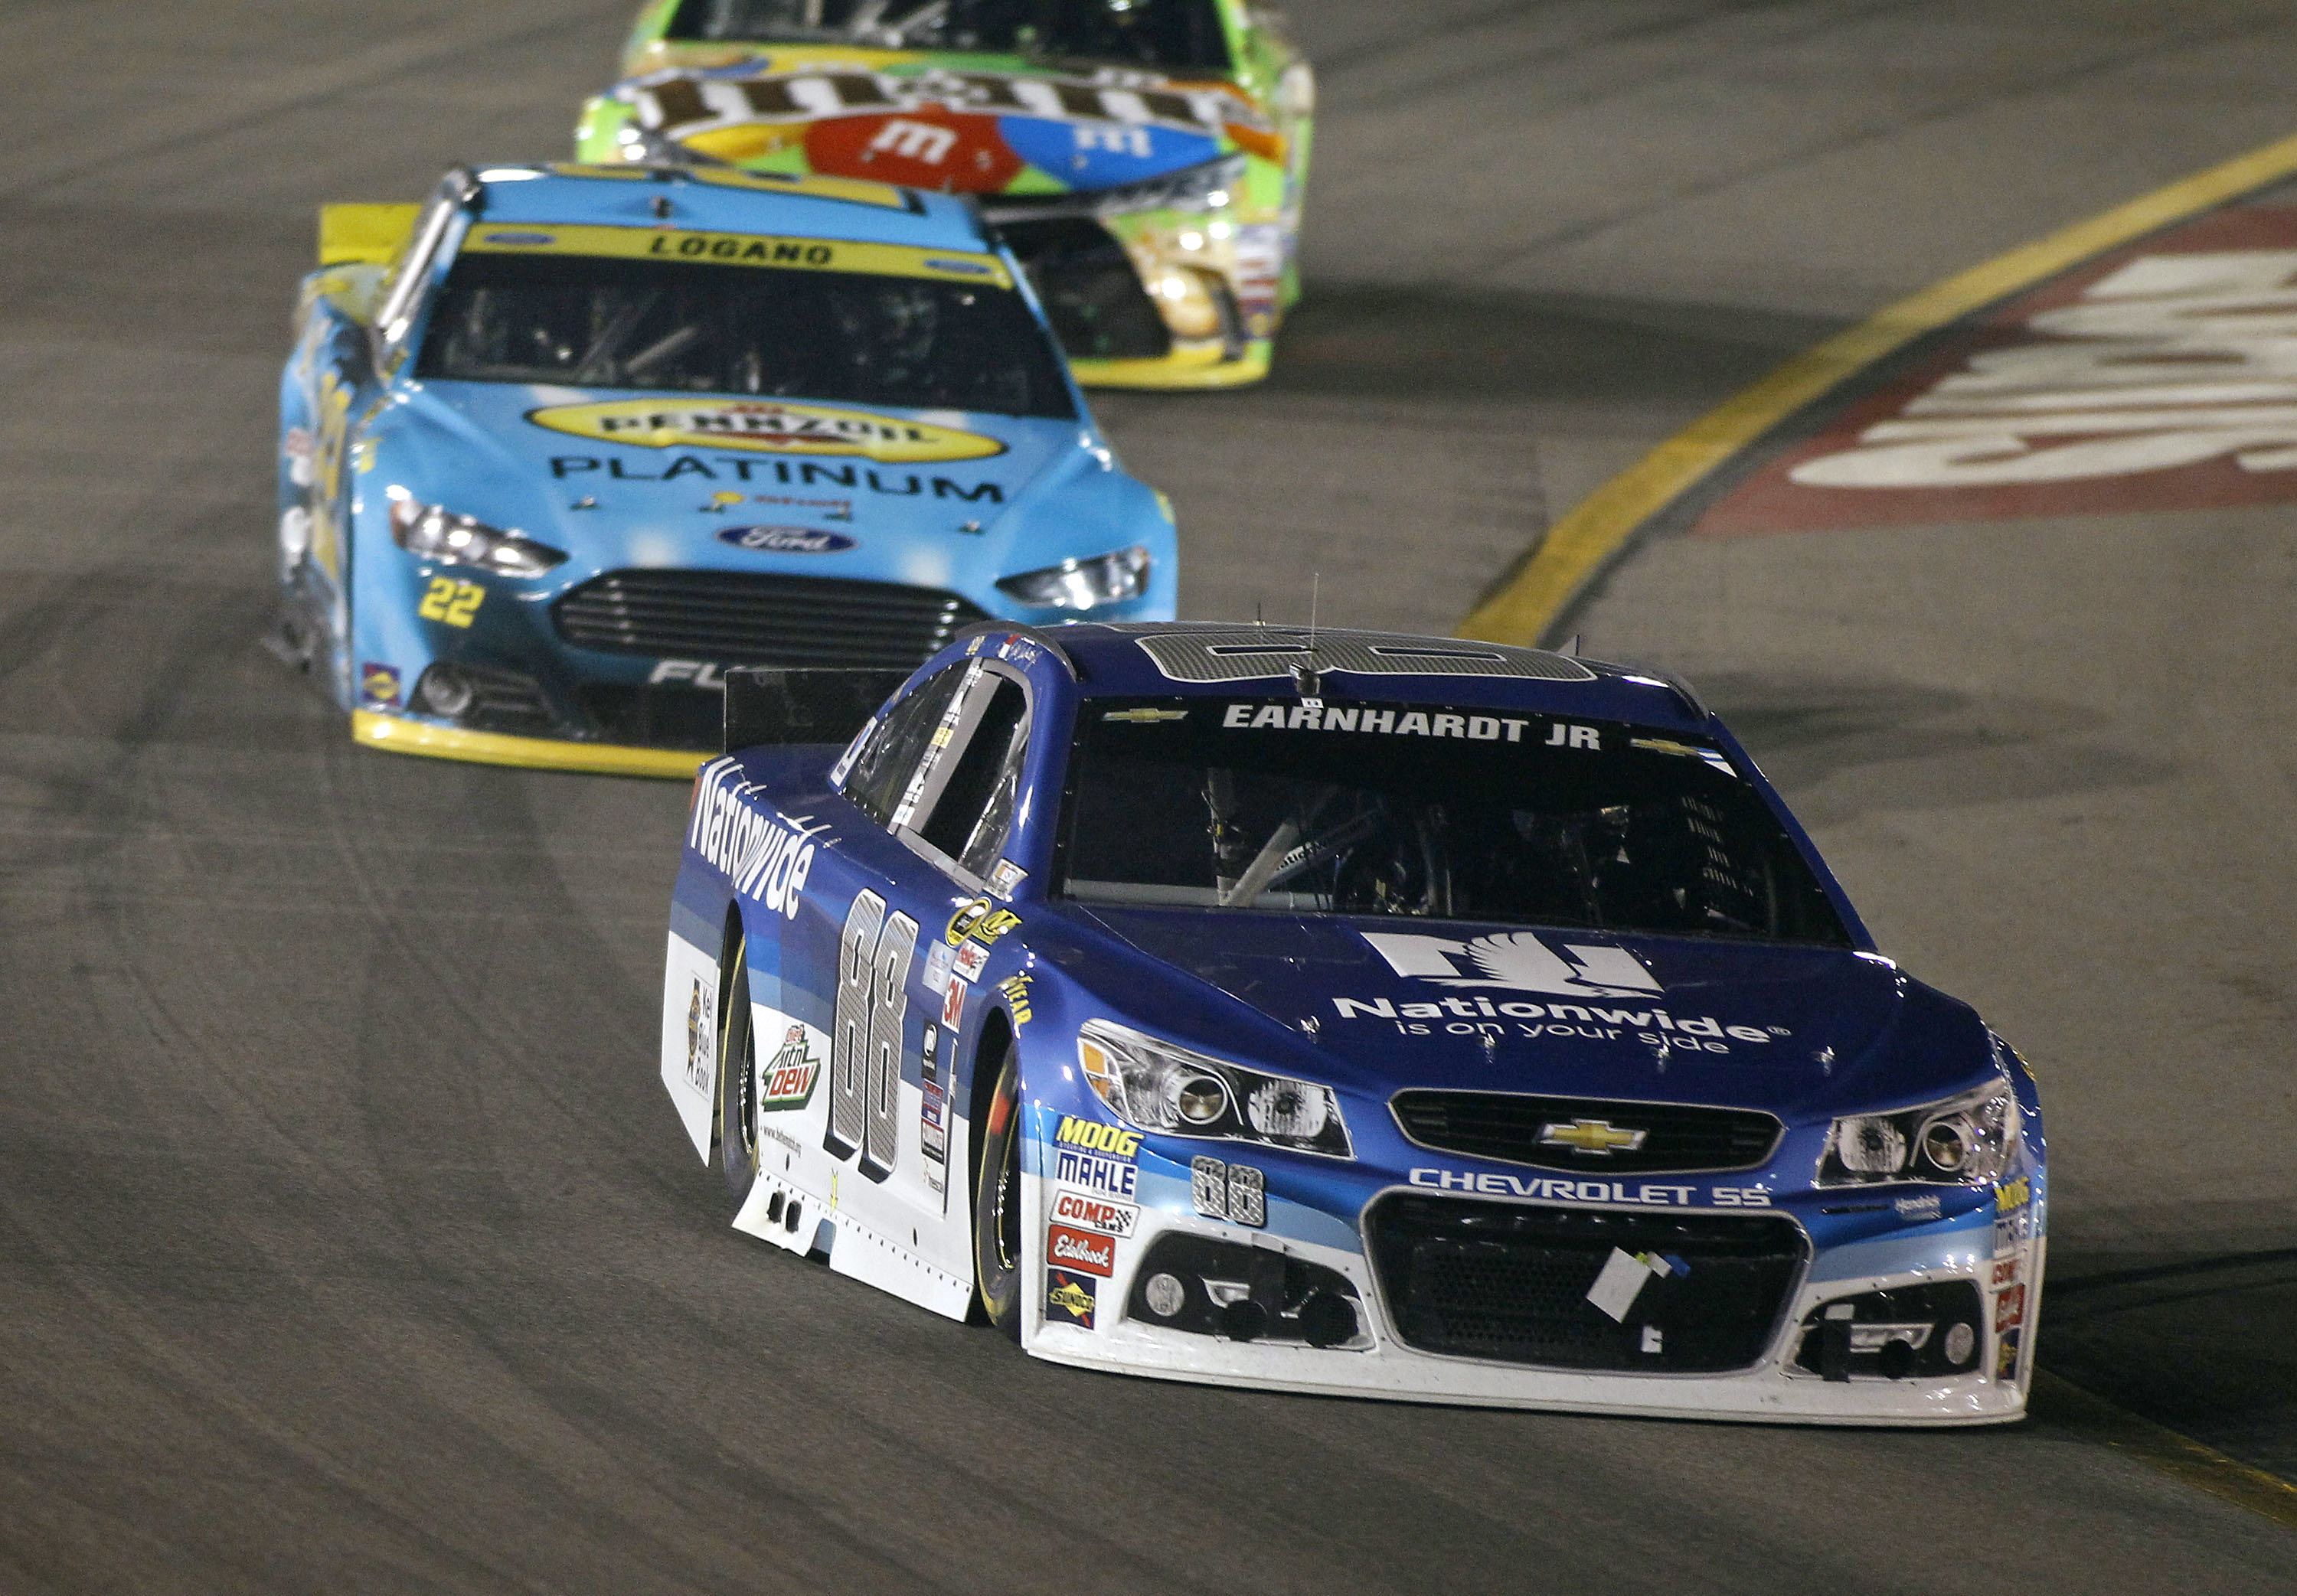 Dale Earnhardt Jr.(88) drives out of Turn 4 ahead of Joey Logano (22) and Kyle Busch during the NASCAR Sprint Cup series auto race at Phoenix International Raceway, Sunday, Nov. 15, 2015, in Avondale, Ariz. (AP Photo/Ralph Freso)